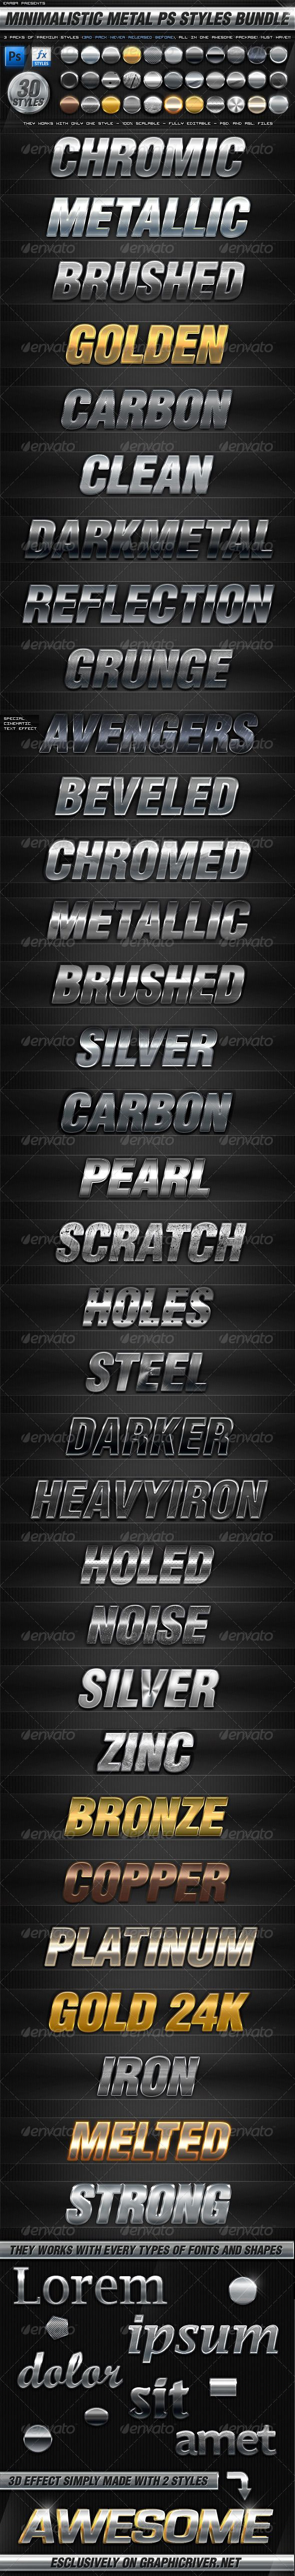 "BUNDLE - 30 Minimalistic Metal PS Styles  #GraphicRiver        BUNDLE – 30 MINIMALITIC METAL PHOTOSHOP STYLES The Best Styles for Magnificent Clean Metal Text Effects Works great for texts and icons! 	   3 .Asl files   3 .Psd files   Detailed Read Me   Previews Images; Thumbnail   	 INSTRUCTIONS: For apply the styles, just select the text or layer to use and make click one of the styles you have downloaded. These styles are 100% Scalable and they works individually, just using the ""Scale…"